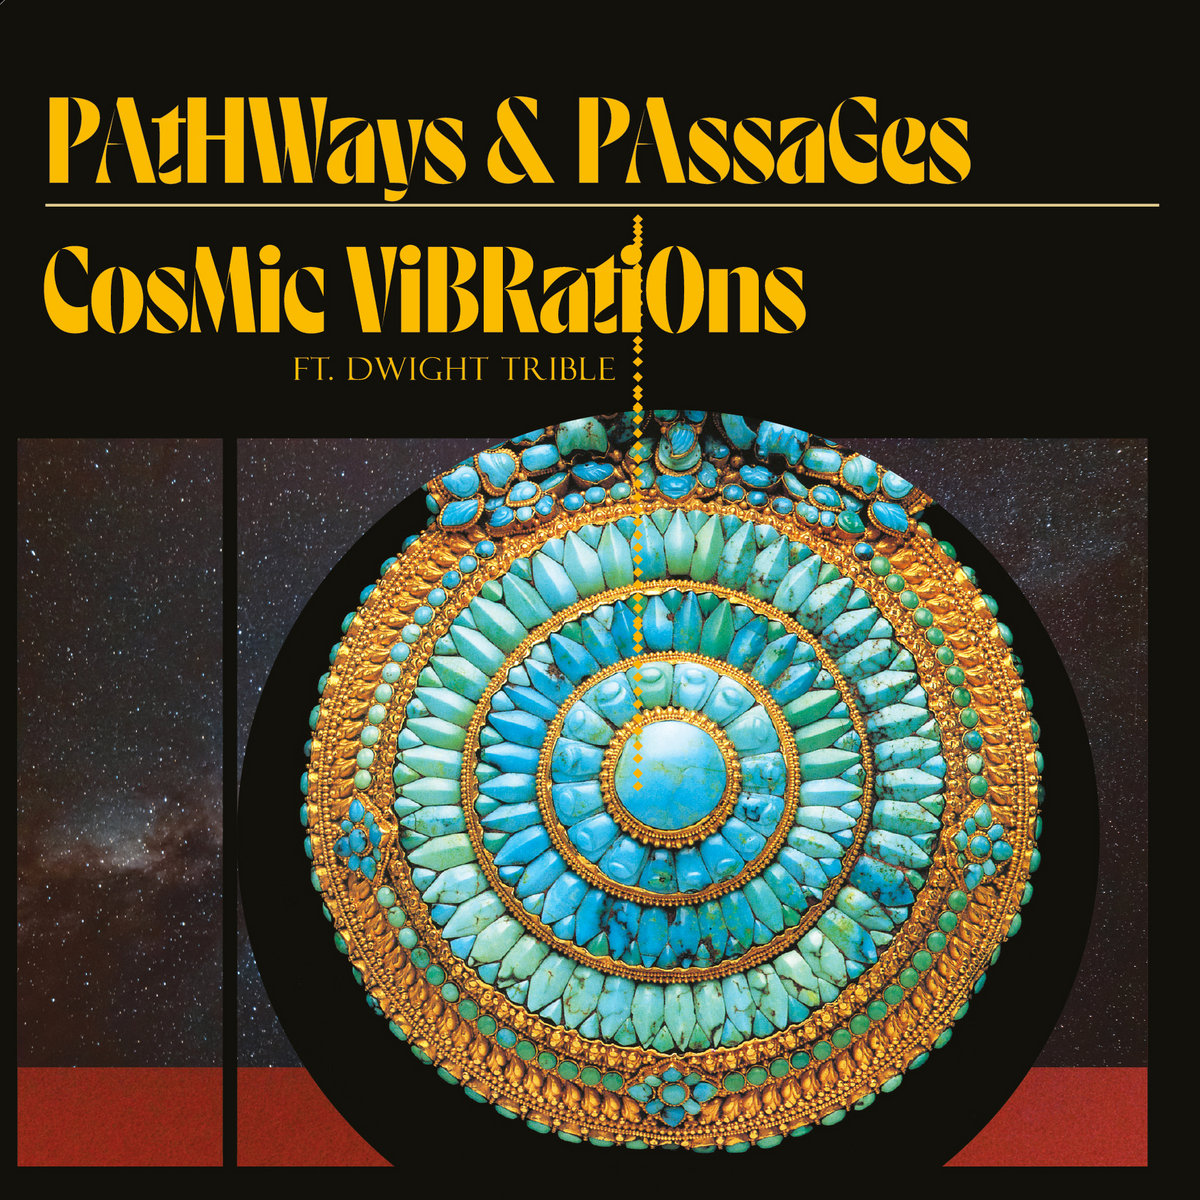 Cosmic Vibrations ft. Dwight Trible | Pathways & Passages